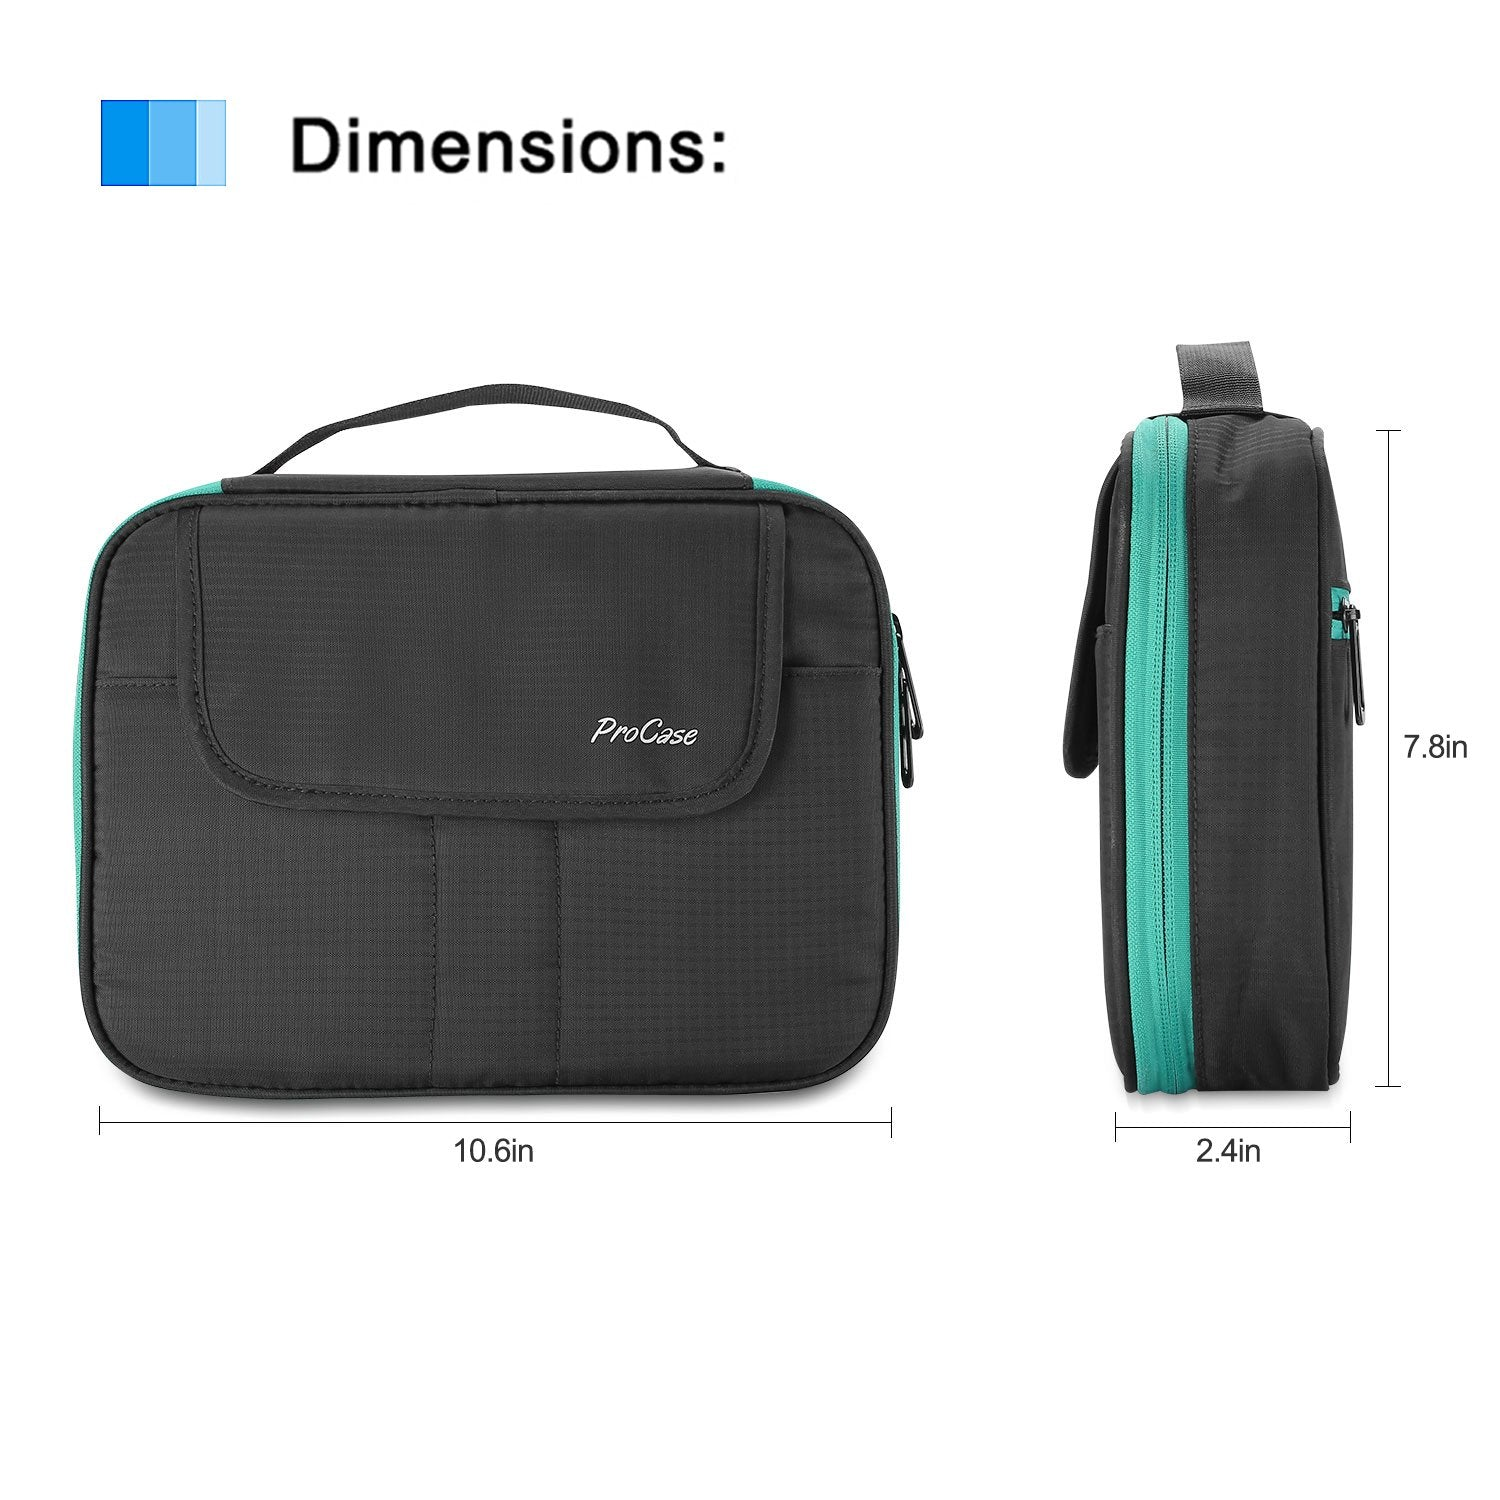 Universal Electronics Accessories Organizer Bag | ProCase